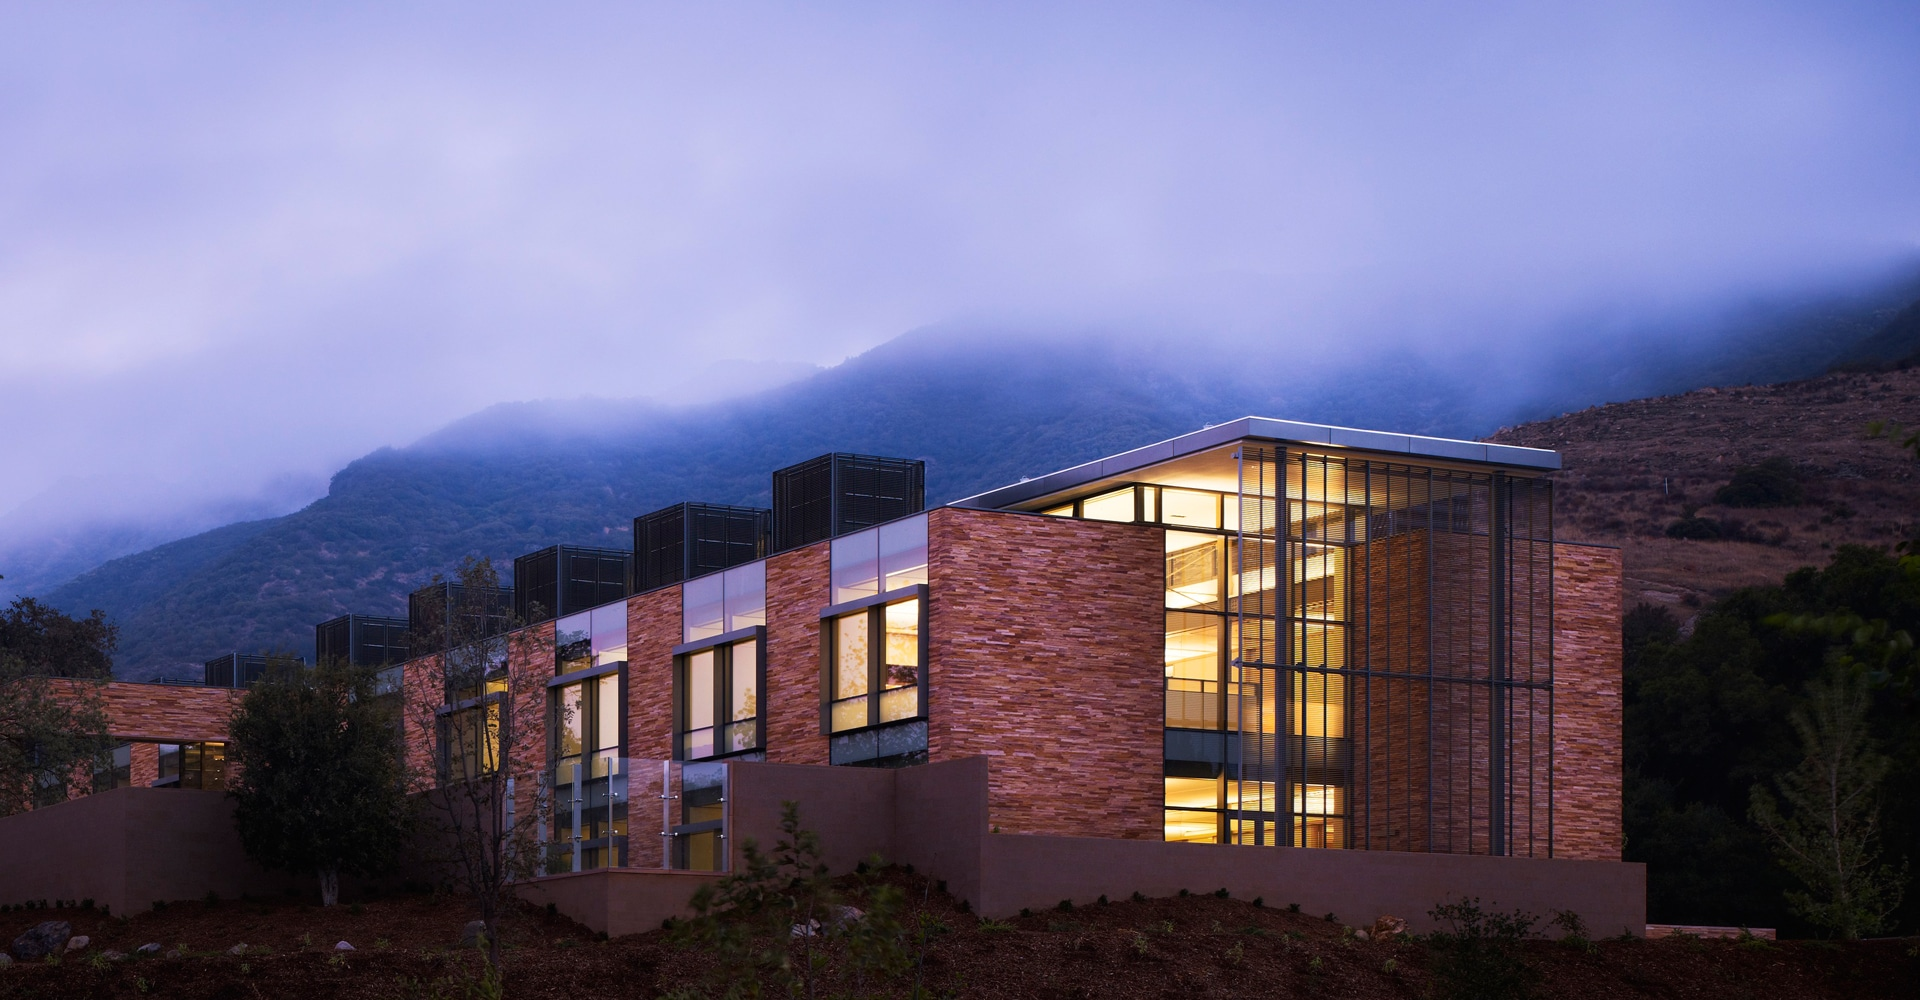 Conrad N. Hilton Foundation Headquarters - Agoura Hills, CA